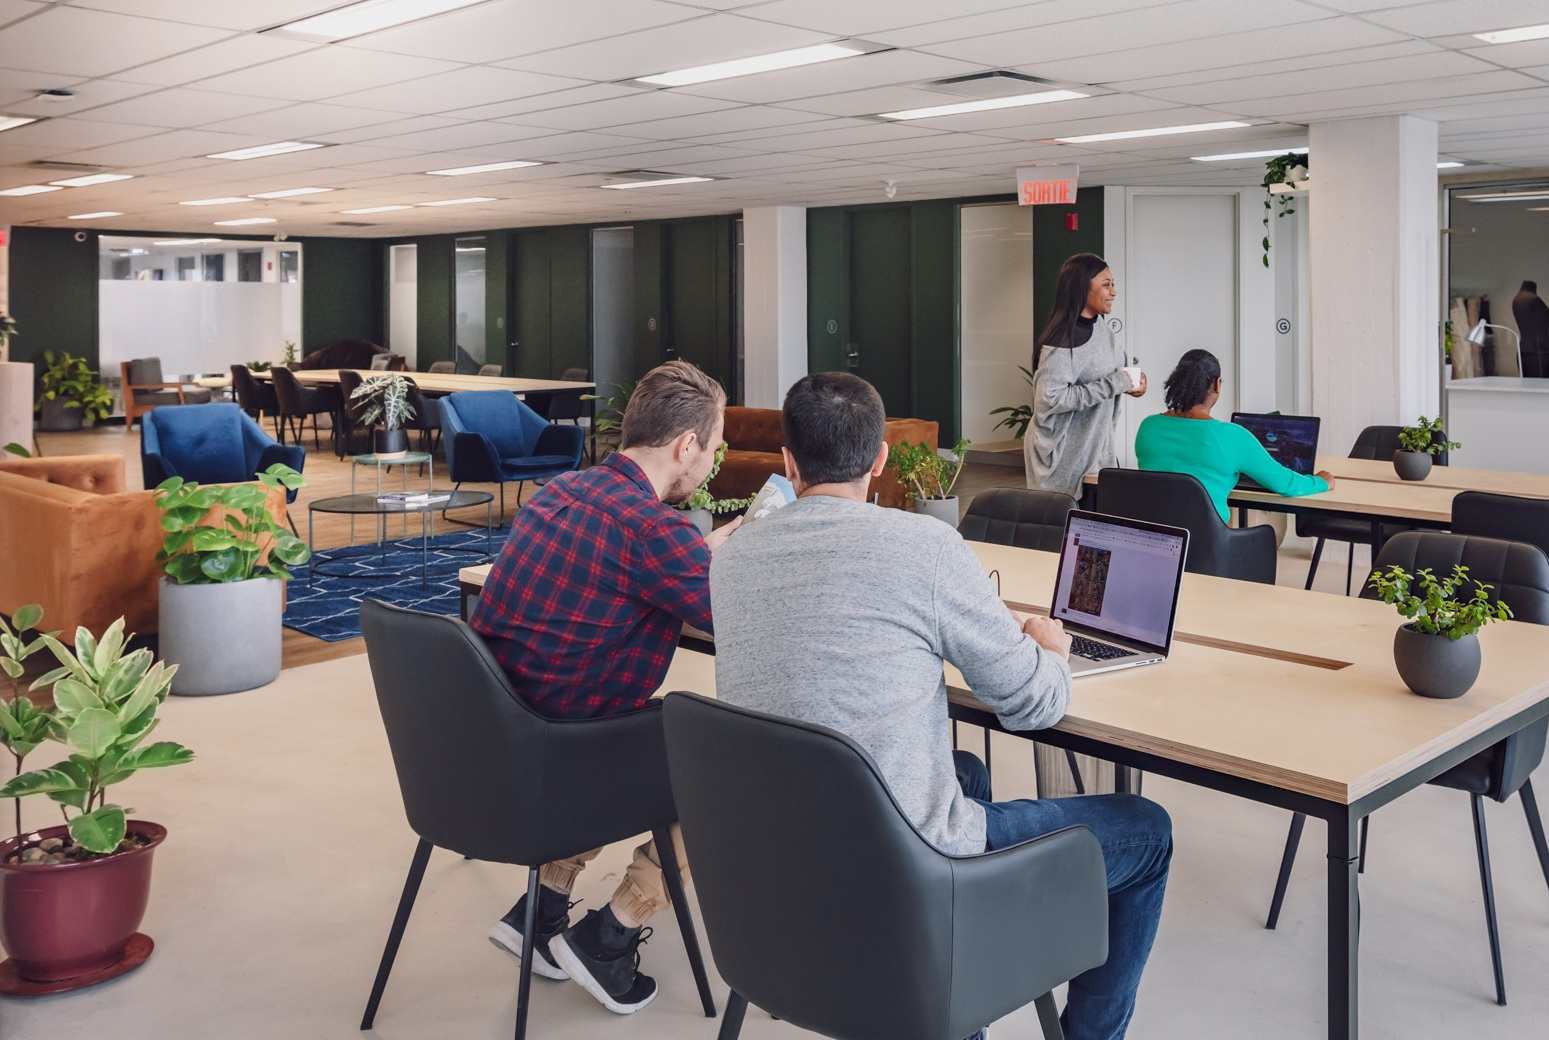 A space designed to get work done. - Starting at $10/ day, you can work surrounded by a community of entrepreneurs like you, without stressing about long-term commitments and focusing your energy on developing your business.